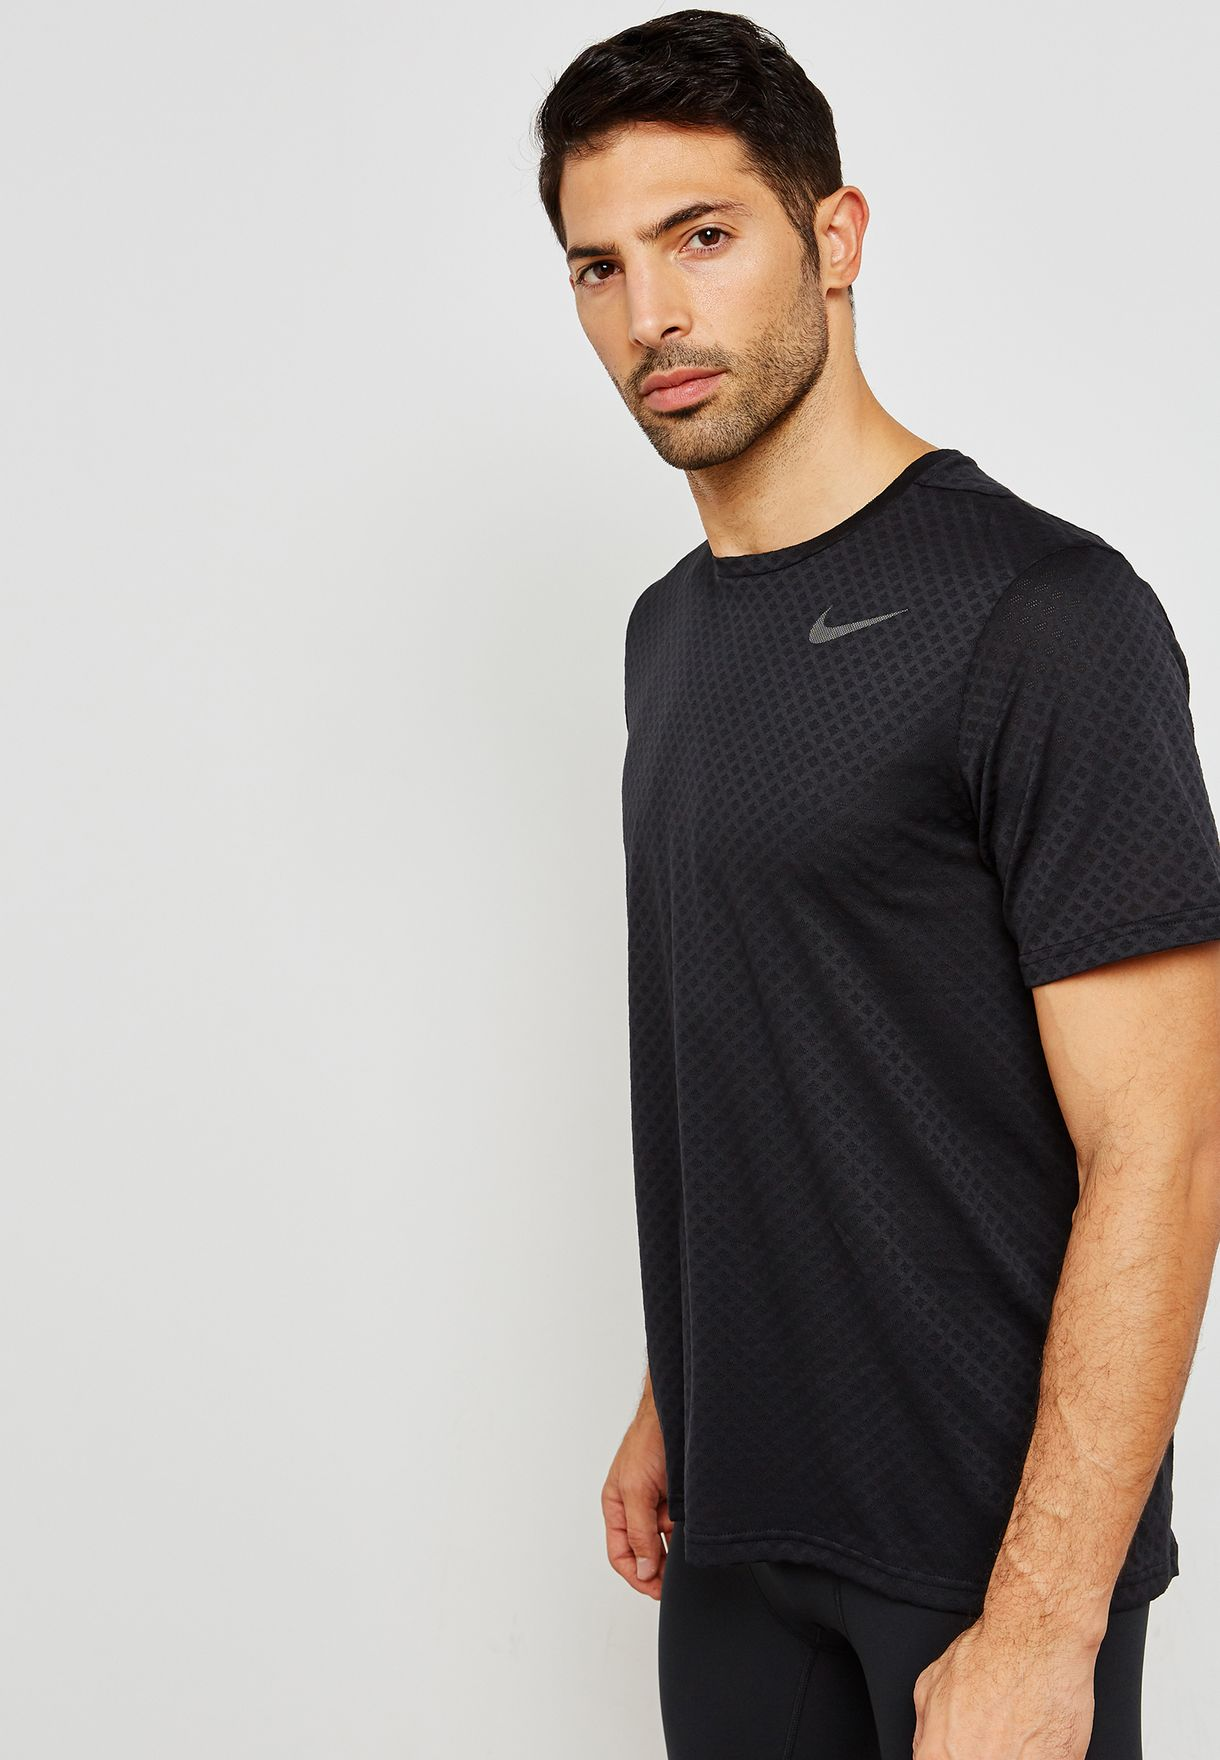 d106127fbee0a Shop Nike black Breathe Vent T-Shirt 886742-010 for Men in UAE ...